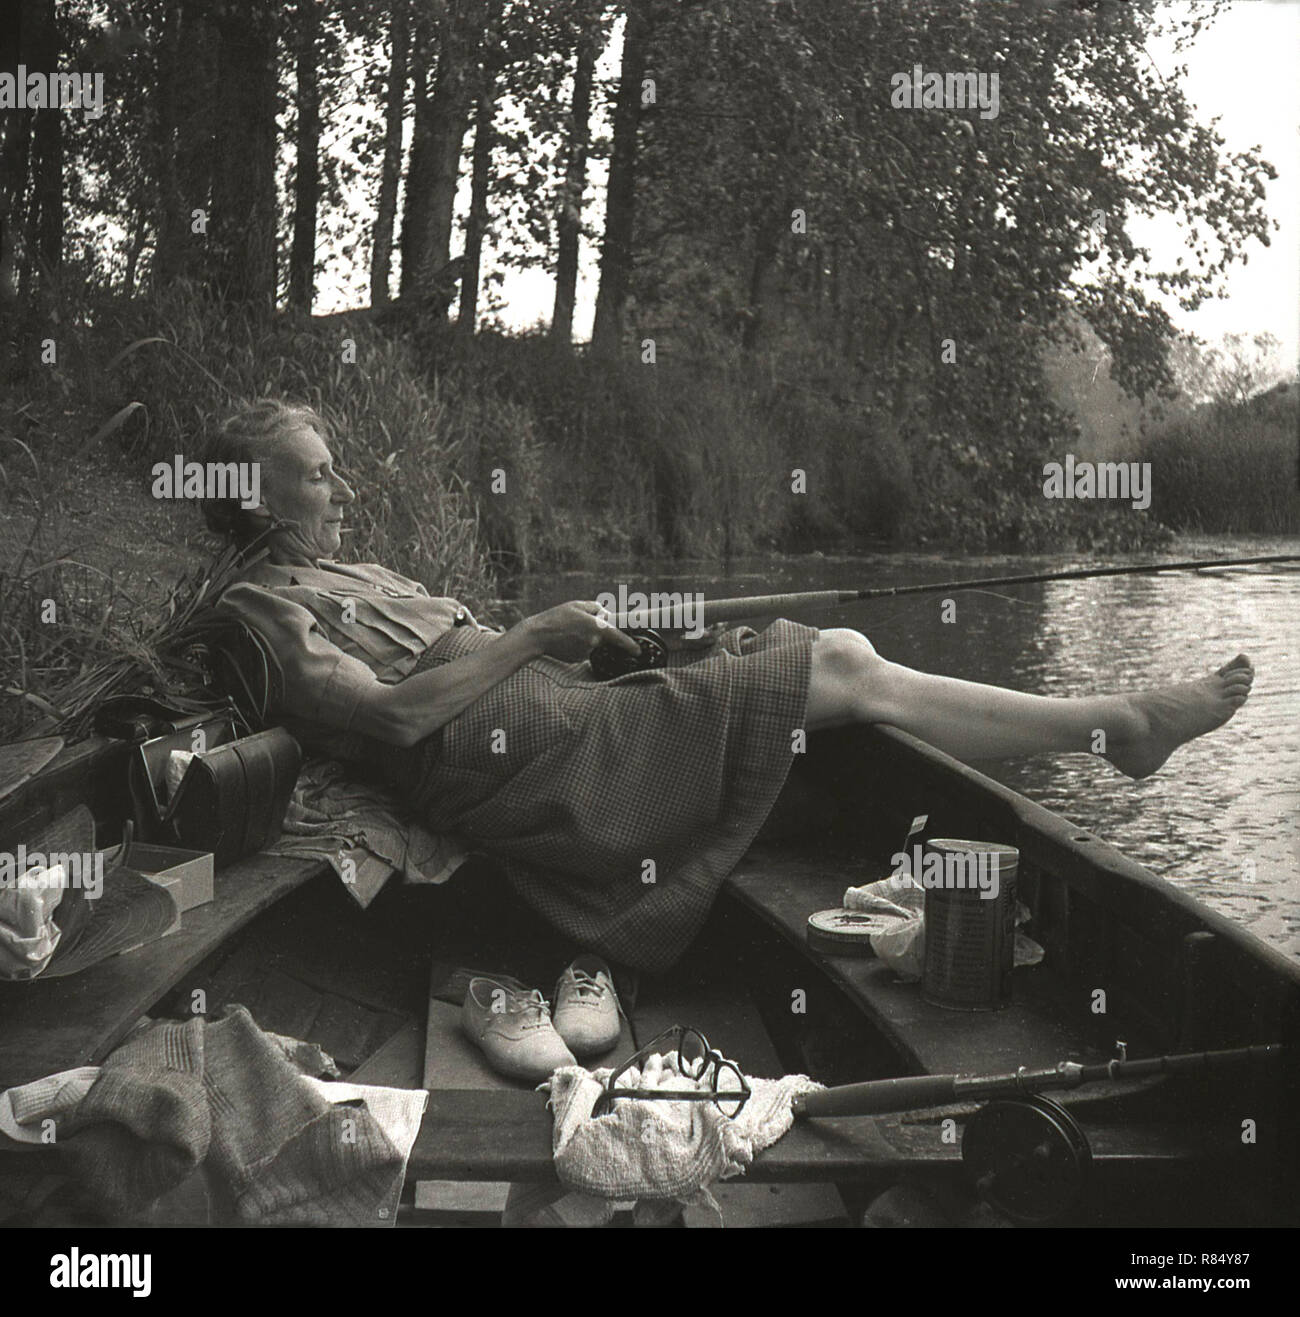 1950s, Elderly lady in barefeet lying back in a rowing boat at a river's edge holding a fishing rod, England, UK. - Stock Image